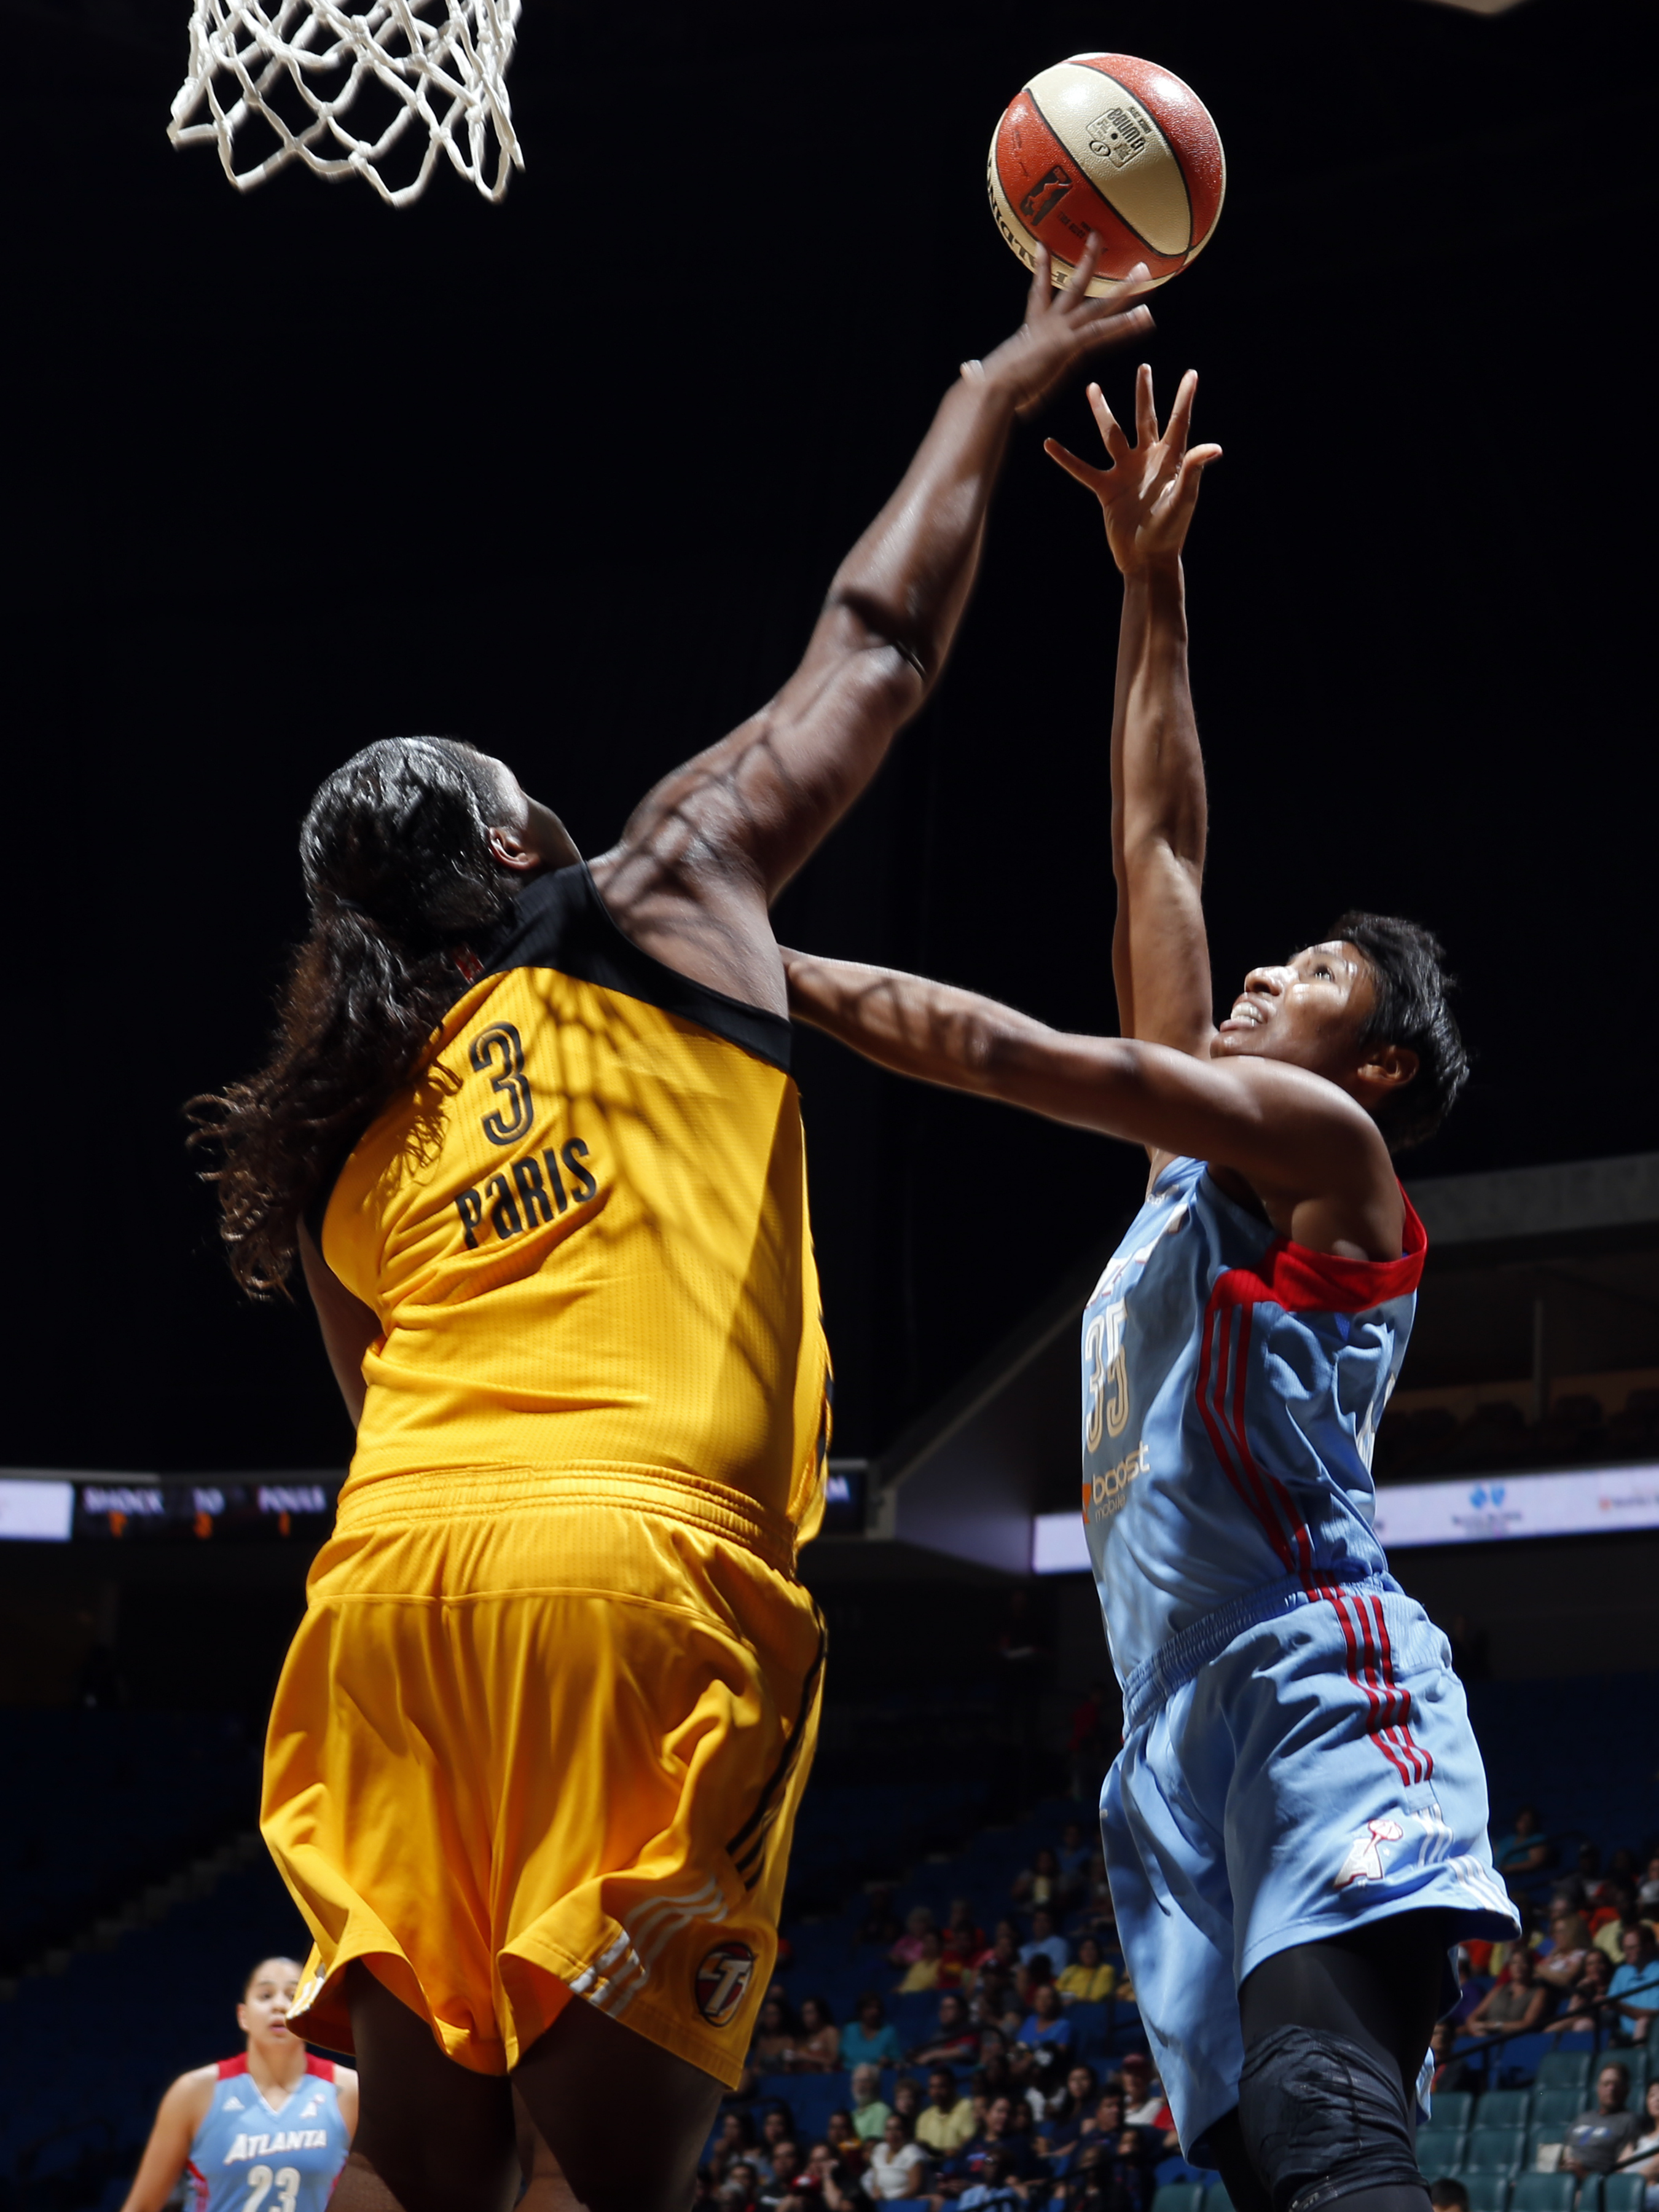 TULSA, OK - AUGUST 9: Angel McCoughtry #35 of the Atlanta Dream shoots the ball against the Tulsa Shock on August 9, 2015 at the BOK Center in Tulsa, Oklahoma.  (Photo by Shane Bevel/NBAE via Getty Images)